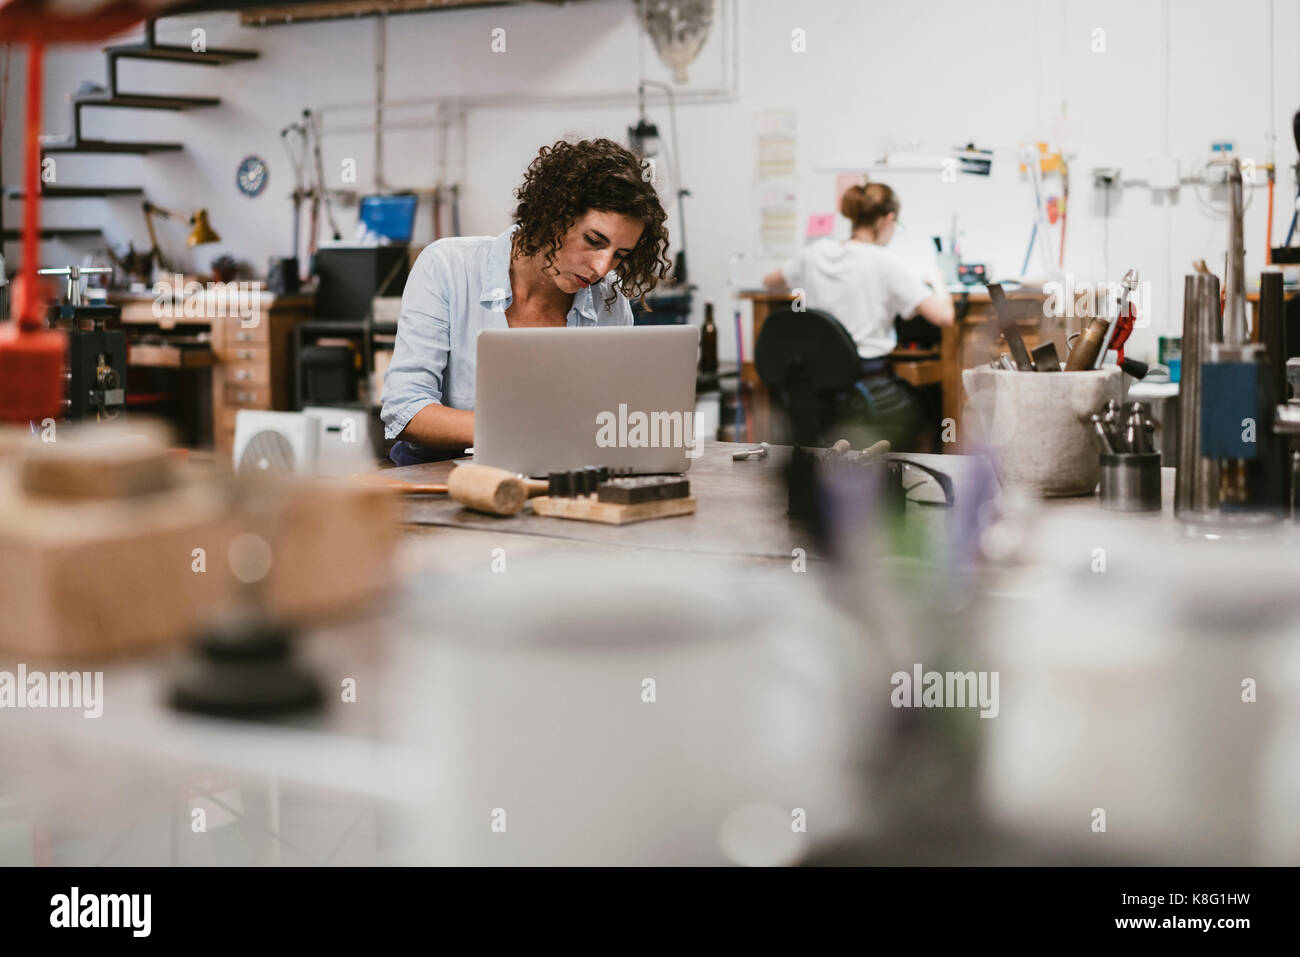 Female jeweller typing on laptop at workbench - Stock Image